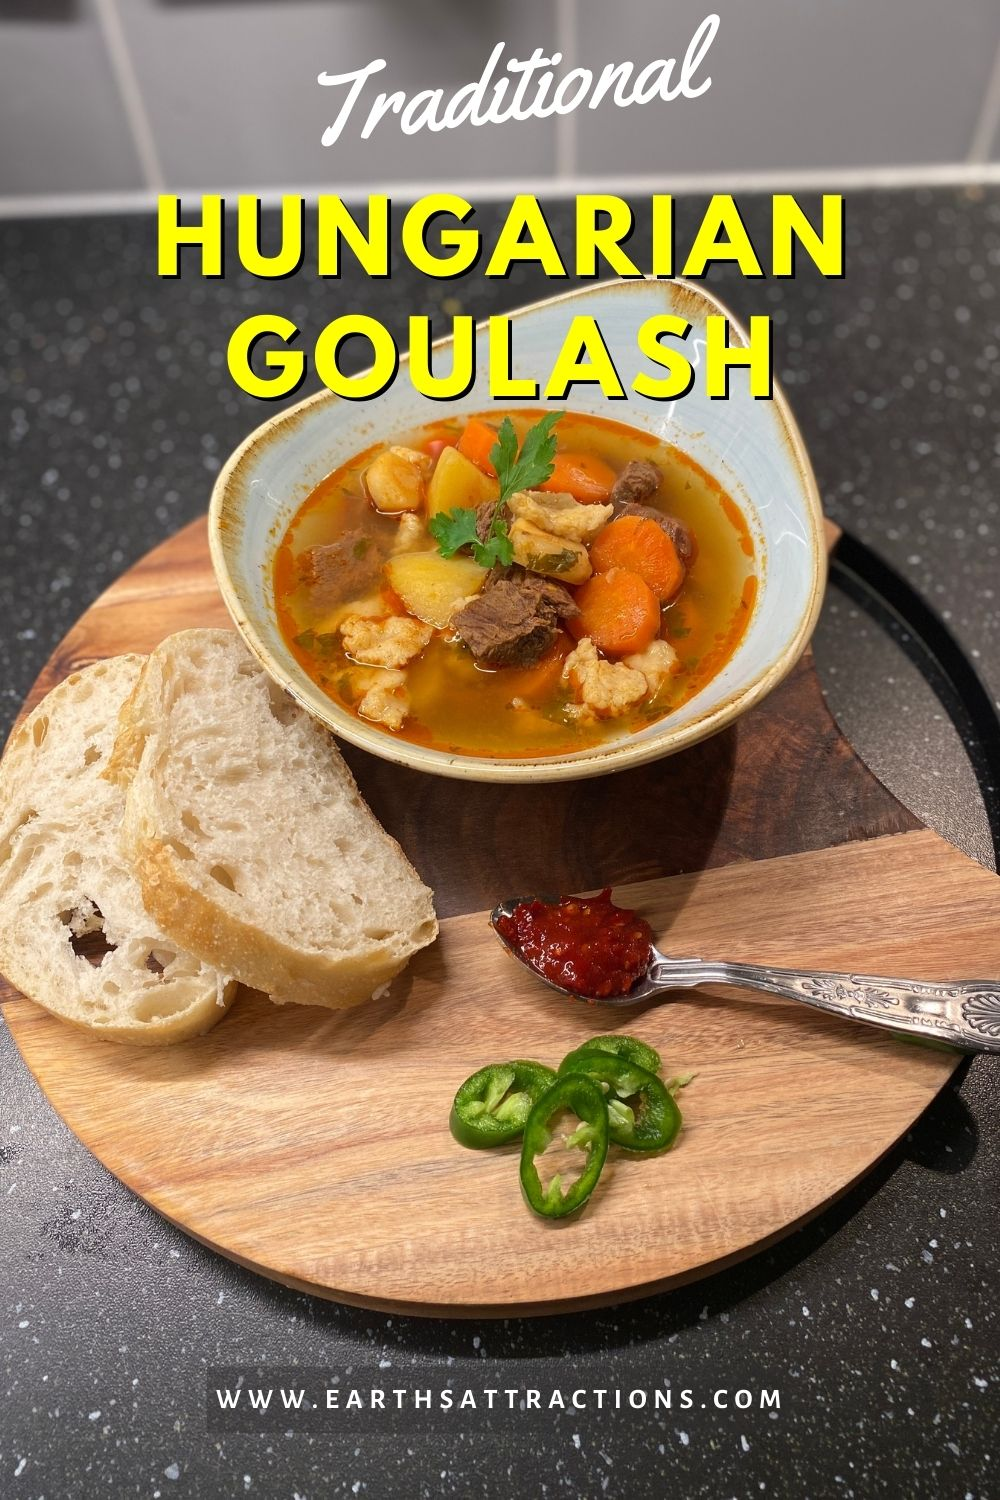 Traditional Hungarian goulash recipe. How to make the authentic goulash! Discover the best beef goulash recipe. #goulash #hungarianfood #hungariandish #internationalfood #food #goulashrecipe #recipe #earthsattractions #hungariangoulash #beefgoulash #beefsoup